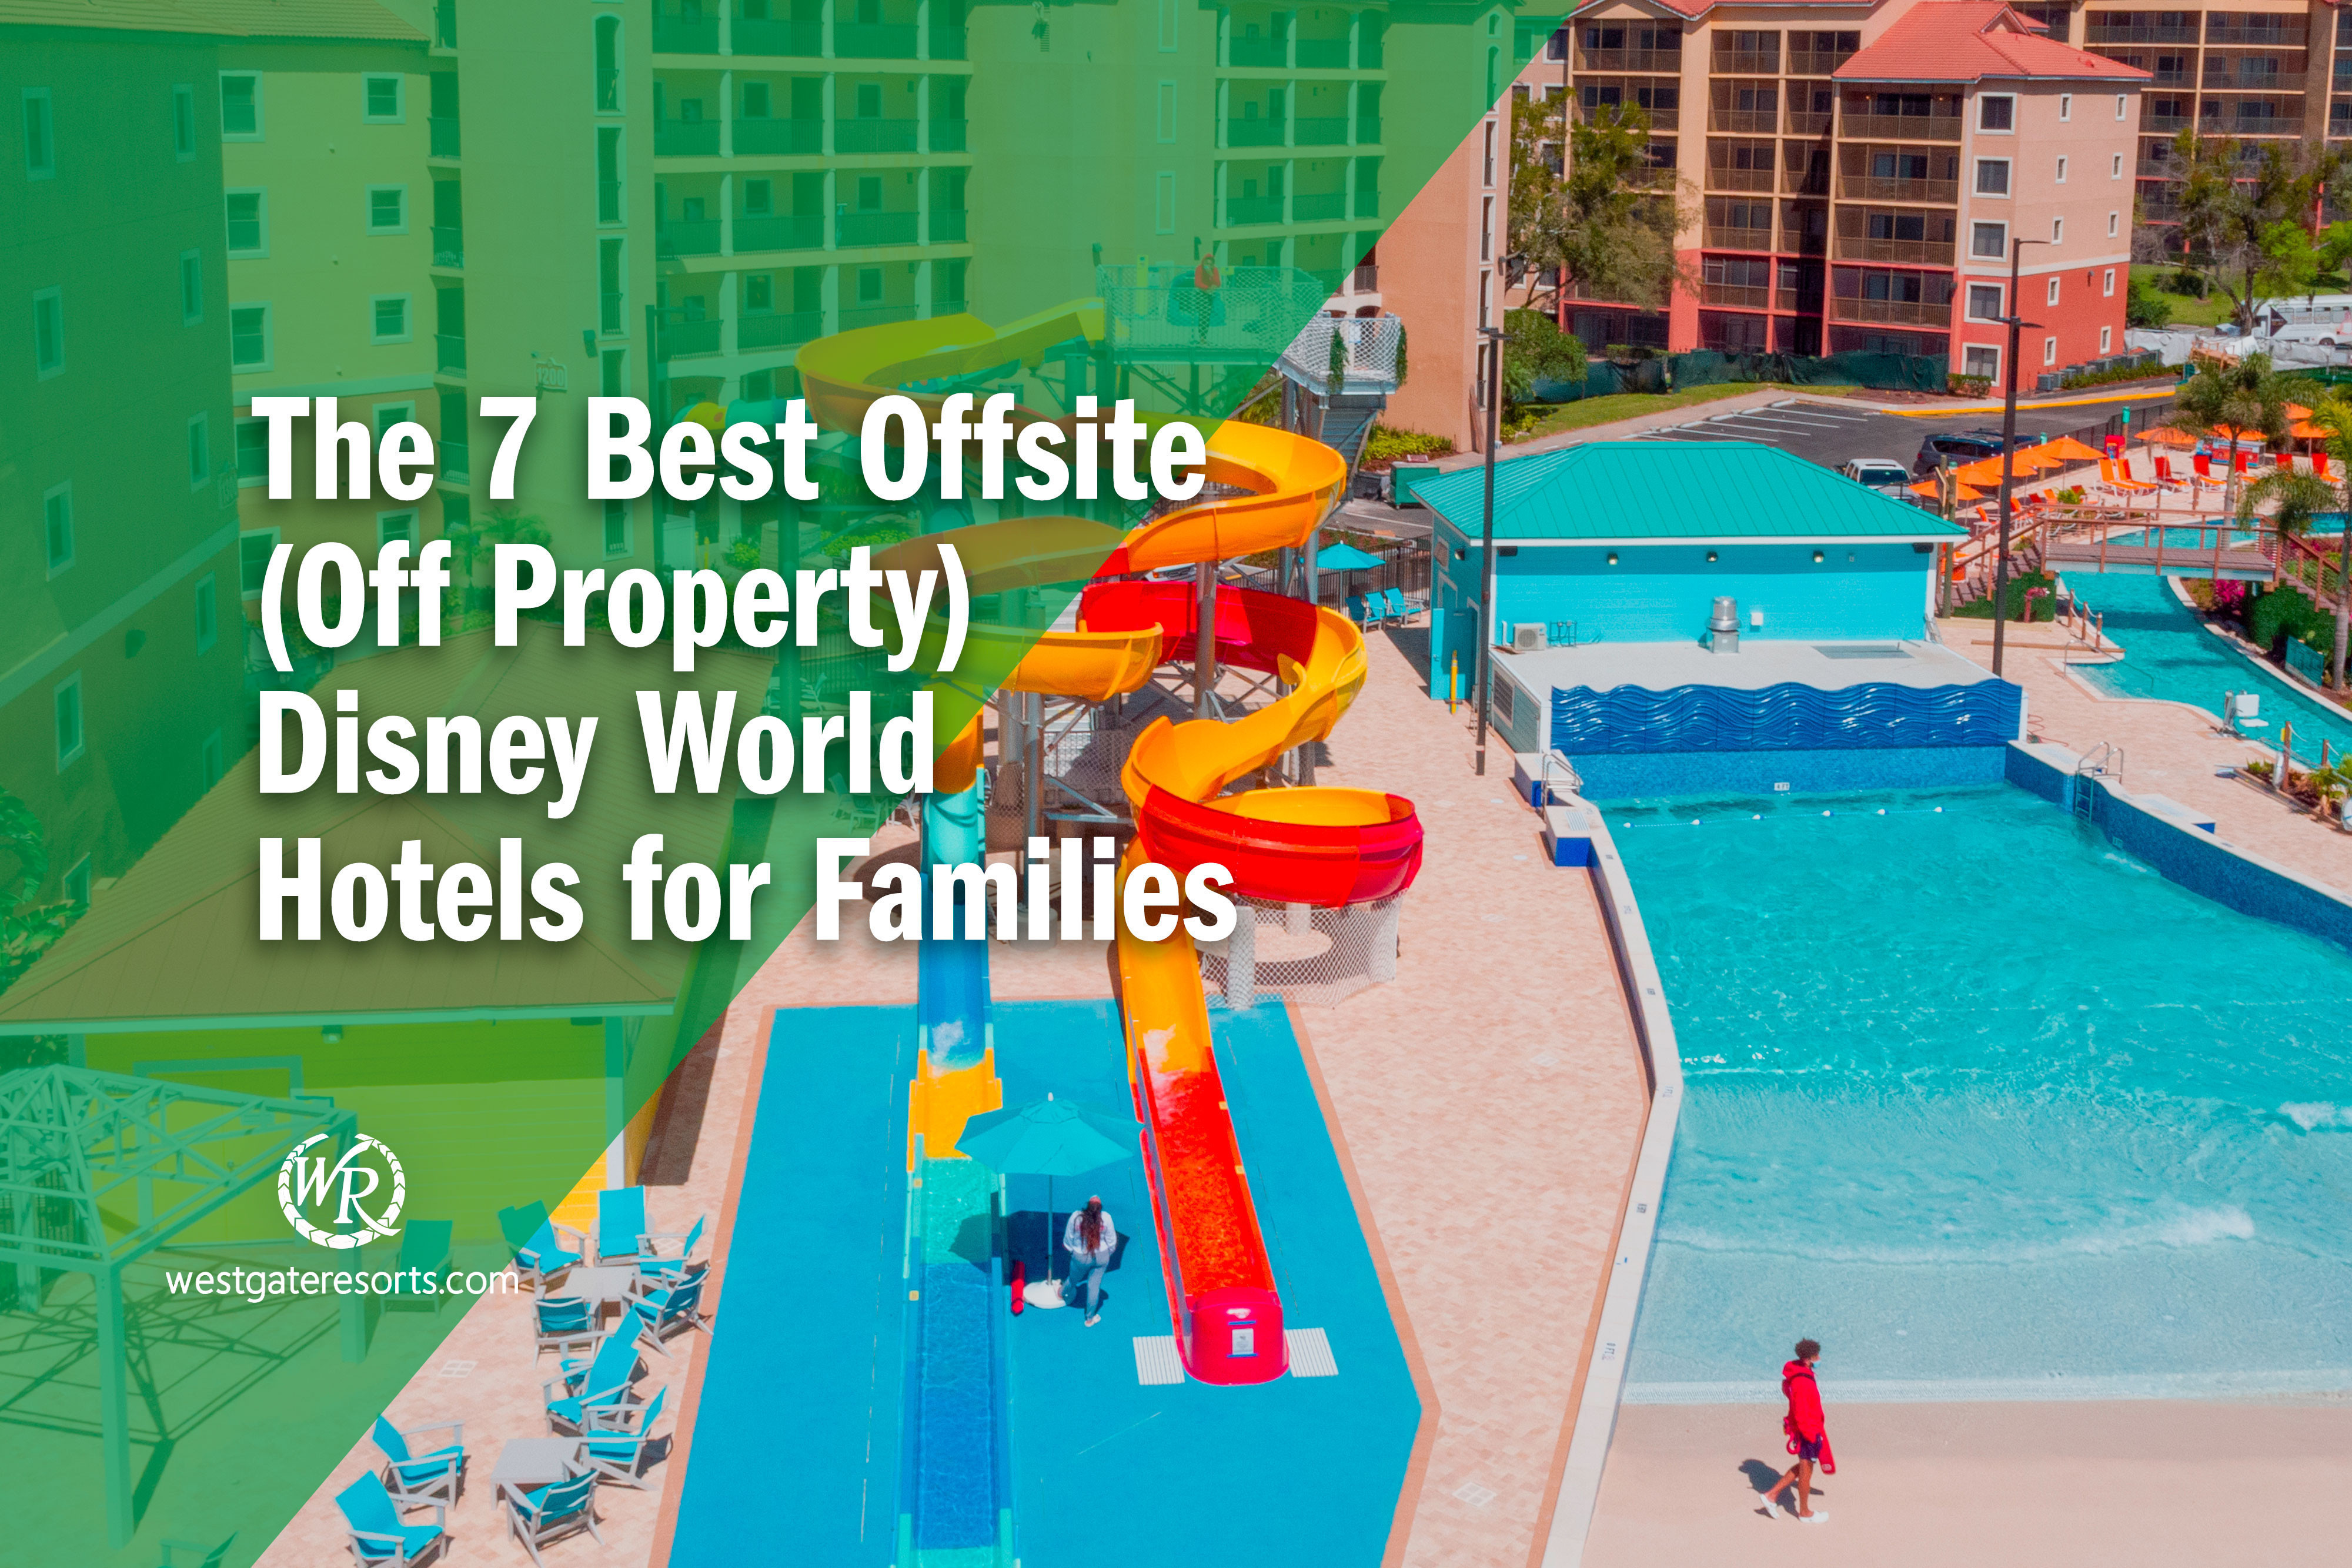 The 7 Best Offsite (Off Property) Disney World Hotels for Families